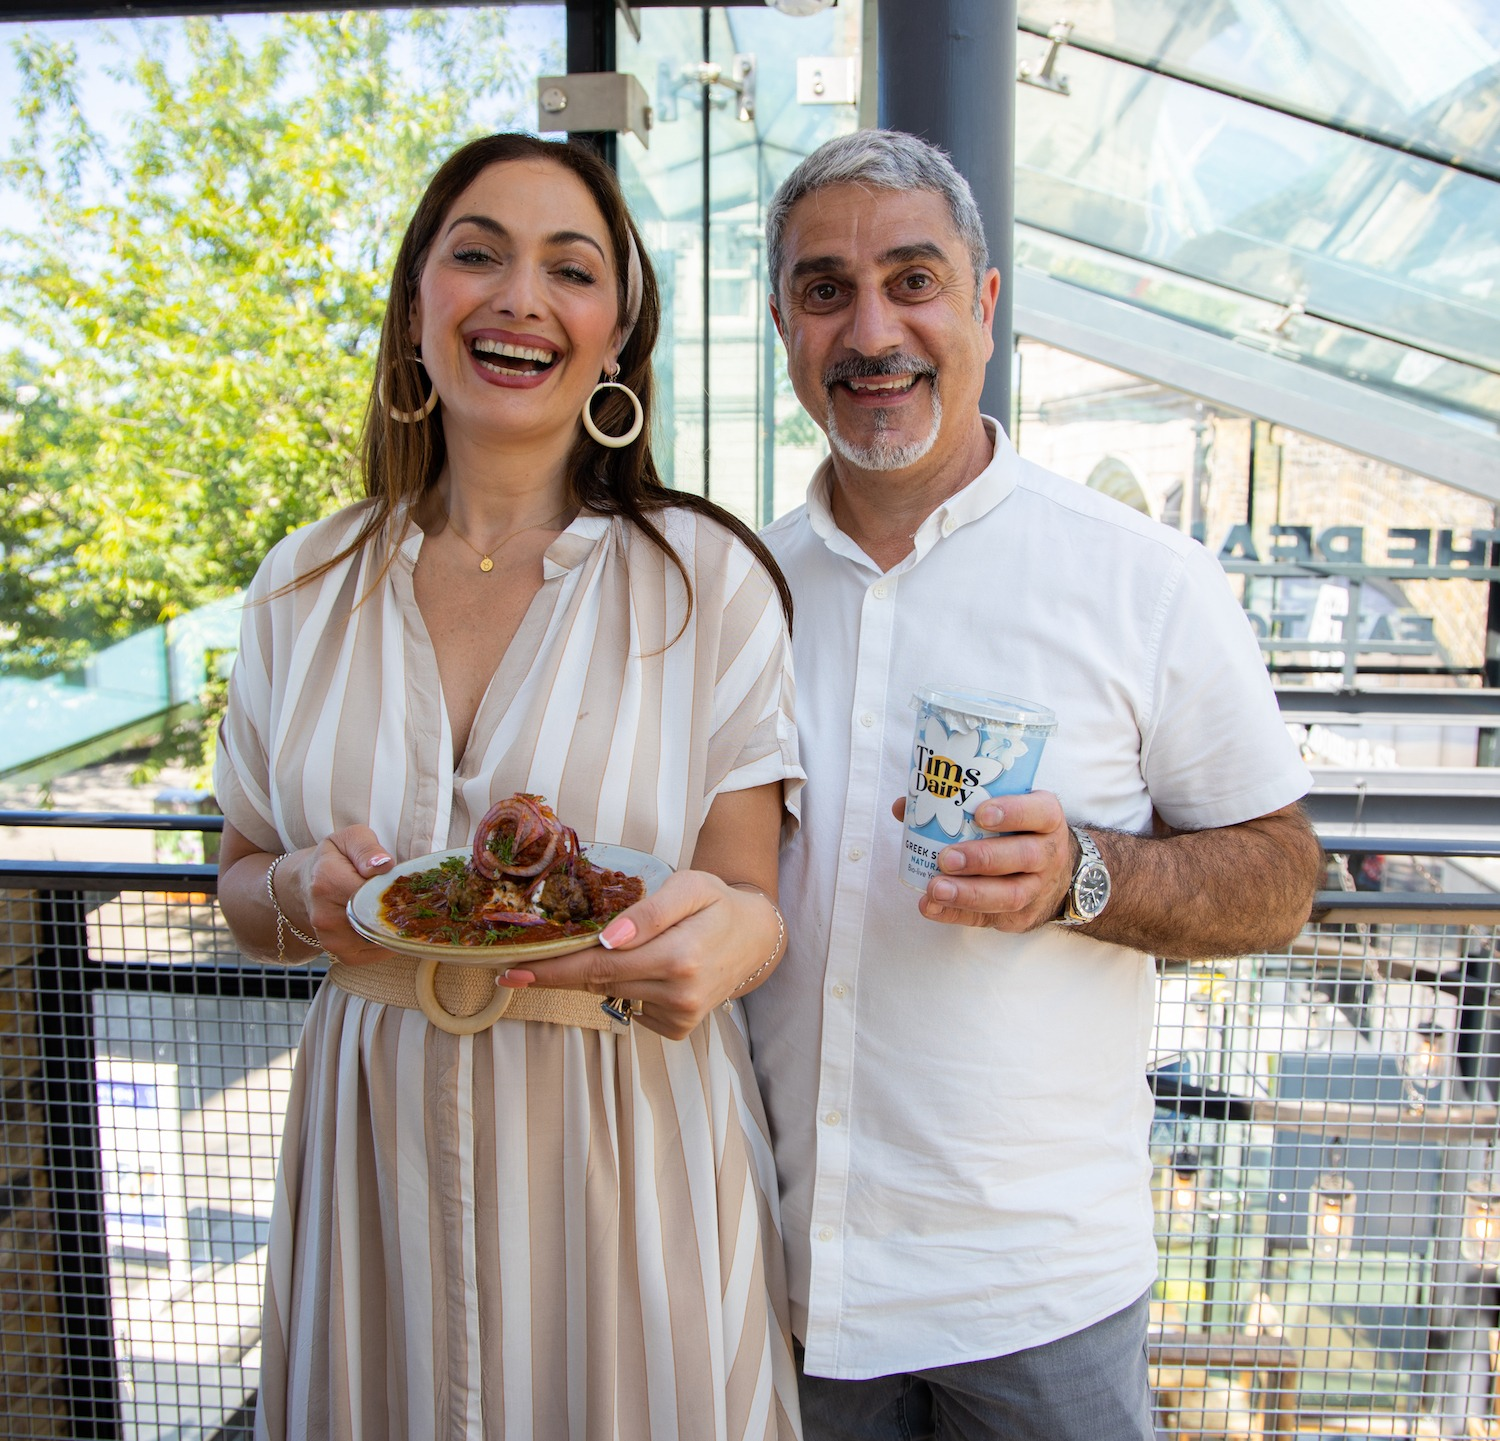 Tonia Buxton Bides The Real Greek Tims Dairy Collaboration Tower Bridge The Real Greek